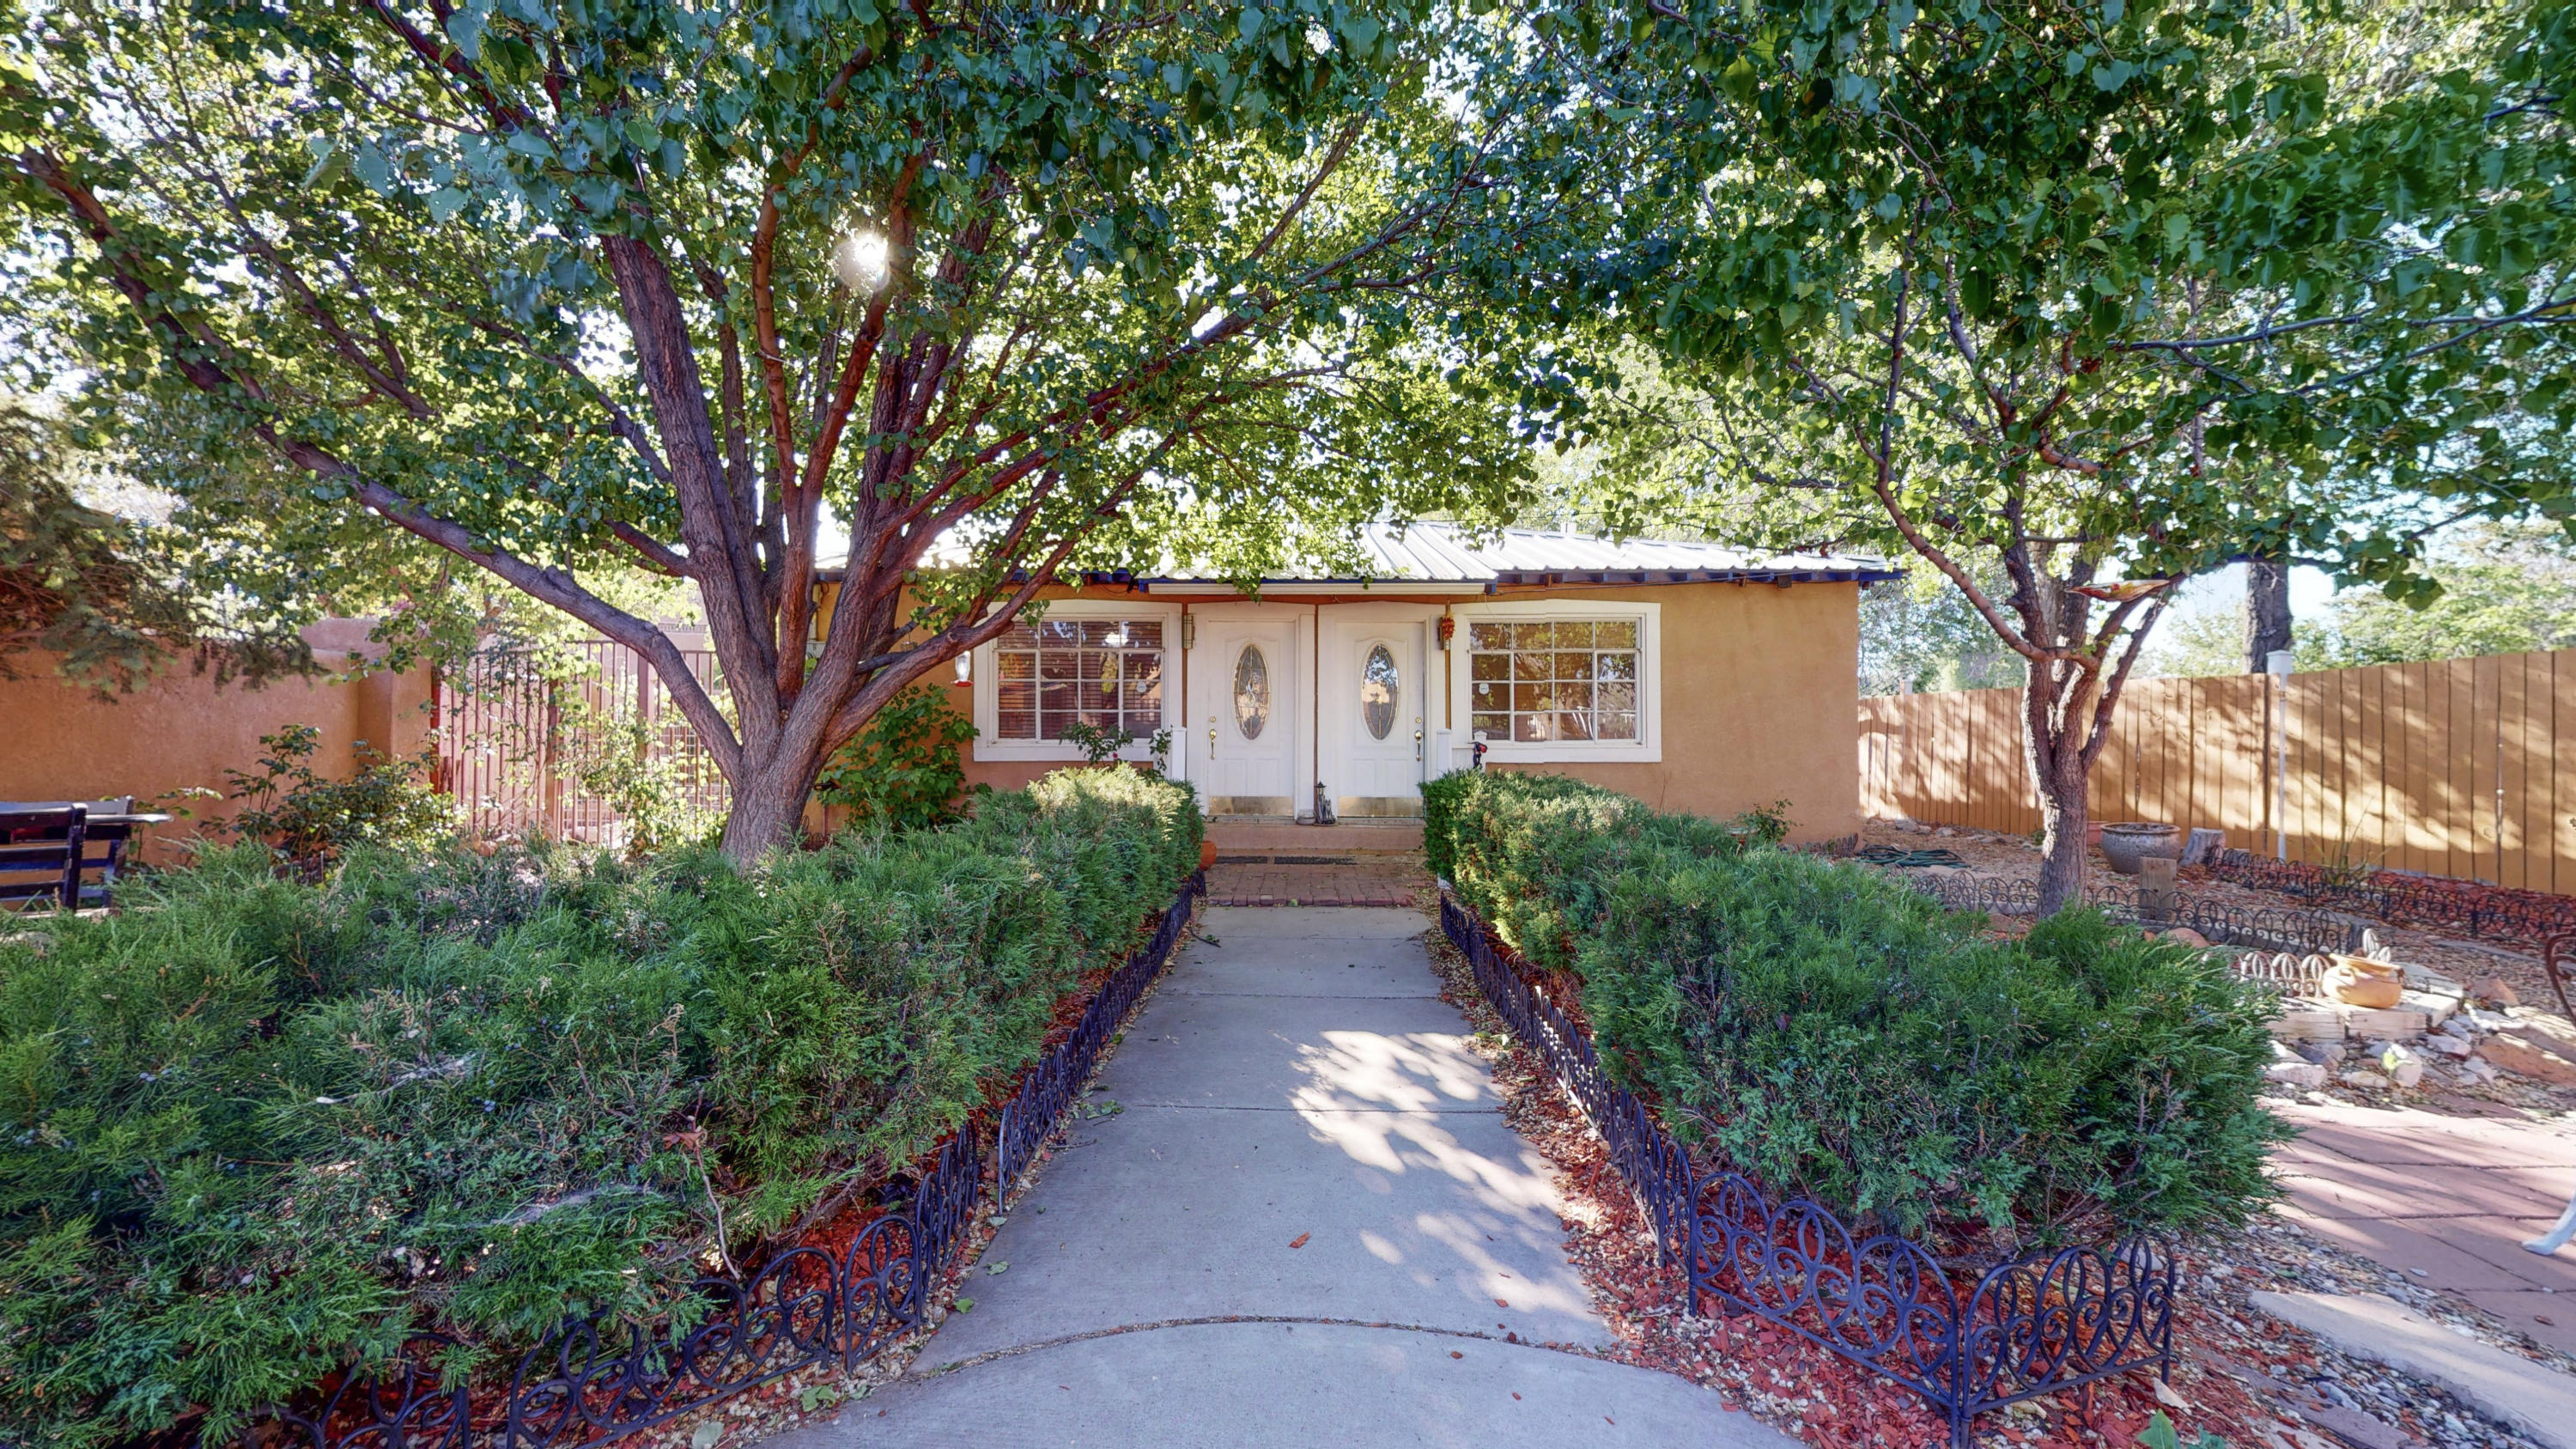 Beautiful North Valley property!  Just off Rio Grande near Old town and the Nature Center with easy access to the bosque trails and just north of I-40.  Gated and fully fenced with  mature  landscape off a private, fairly hidden driveway.   This duplex would be a great opportunity for rental income, an office for an attorney or CPA or a great space for a marijuana dispensary.   Up to 6 private parking spaces with community parking available. Rare Zoning!Zoned C-1 & Multi-family Res U4U, Current rental income is $1295 per unit.